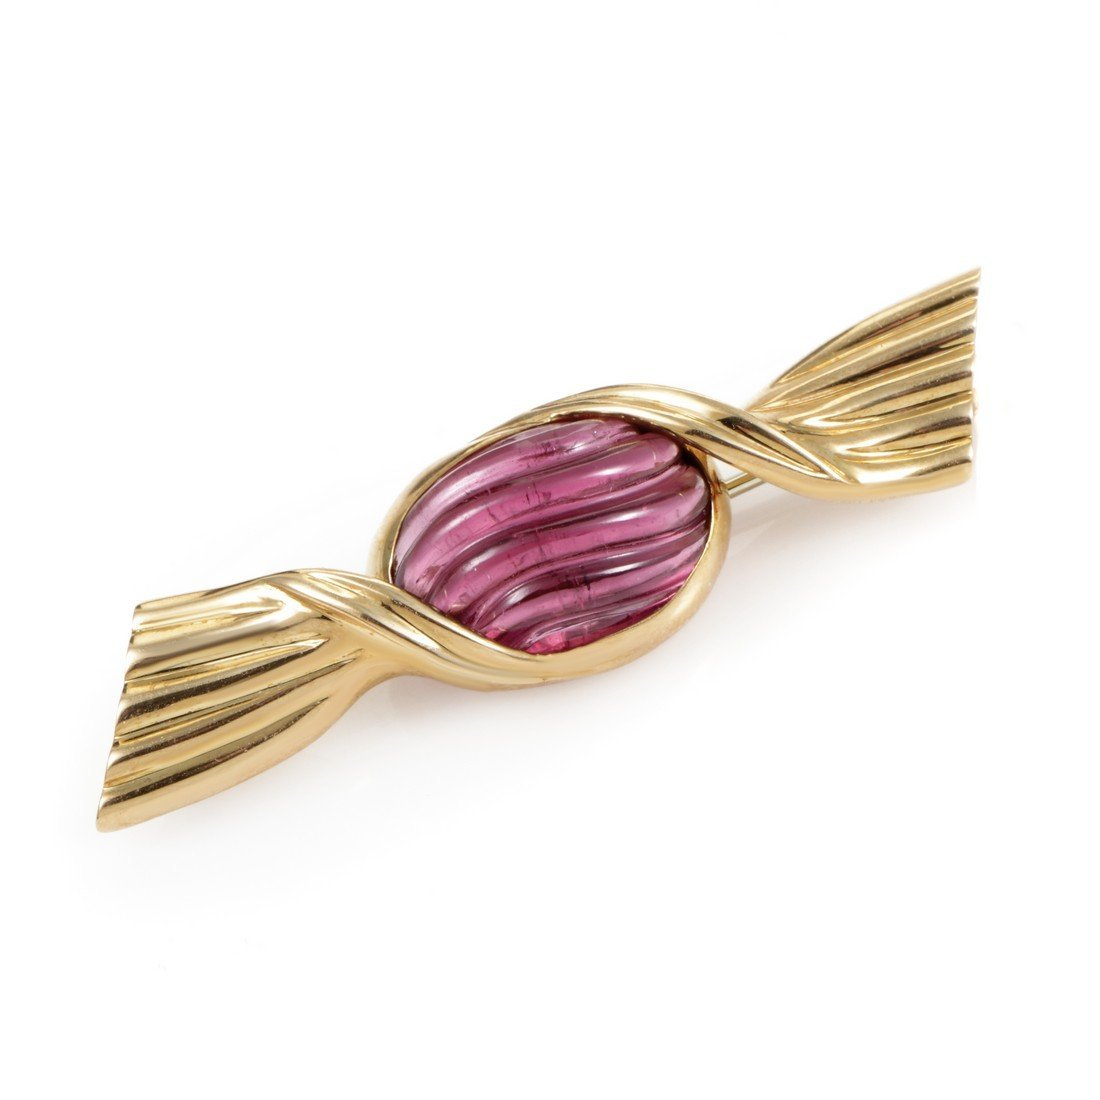 Bvlgari 18K Yellow Gold Tourmaline Bonbon Brooch